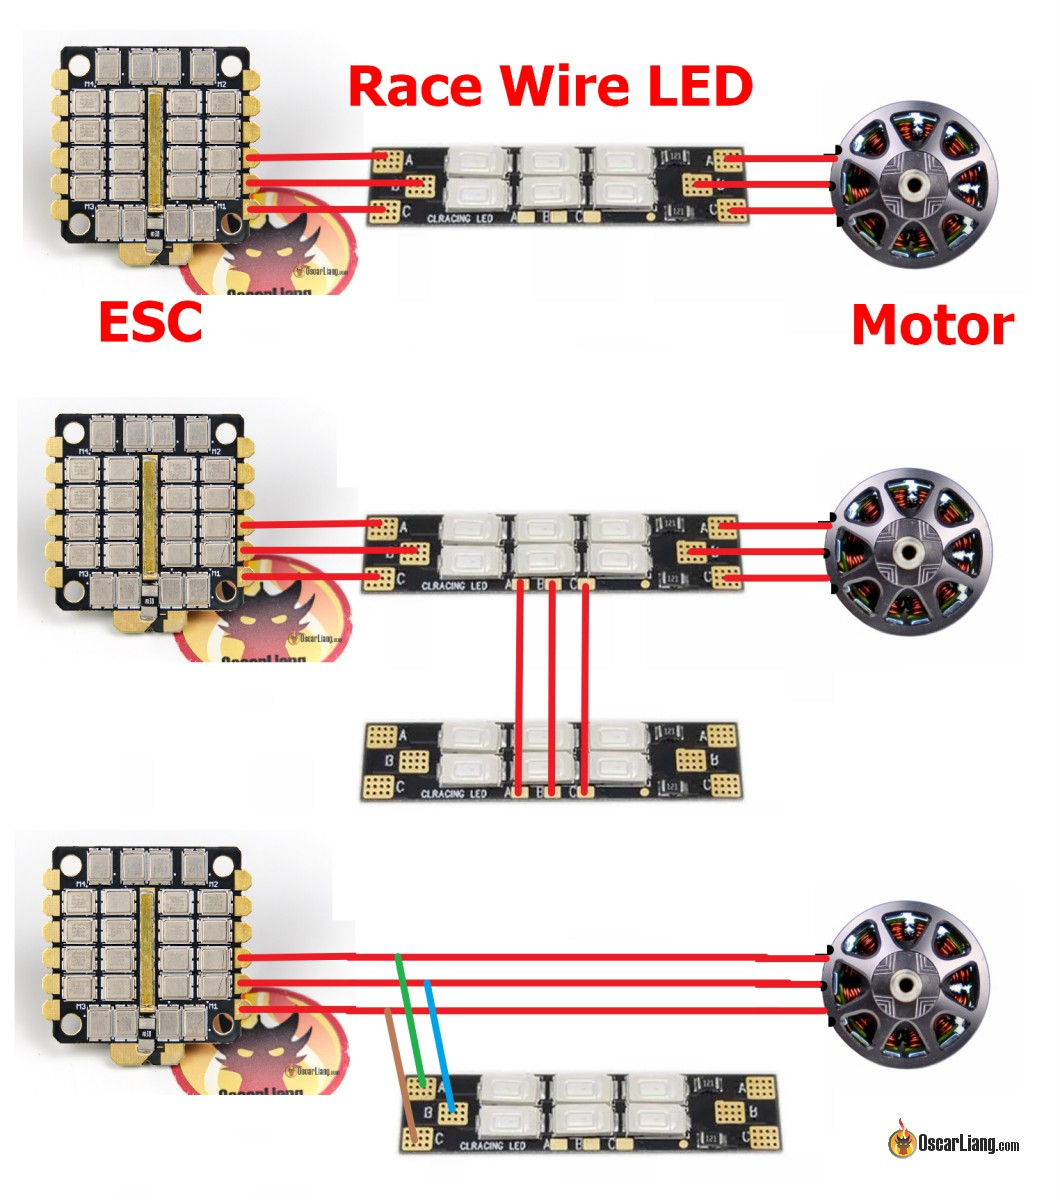 Fine Motor Wire Led Led Boards Powered By Esc Motor Oscar Liang Wiring 101 Capemaxxcnl